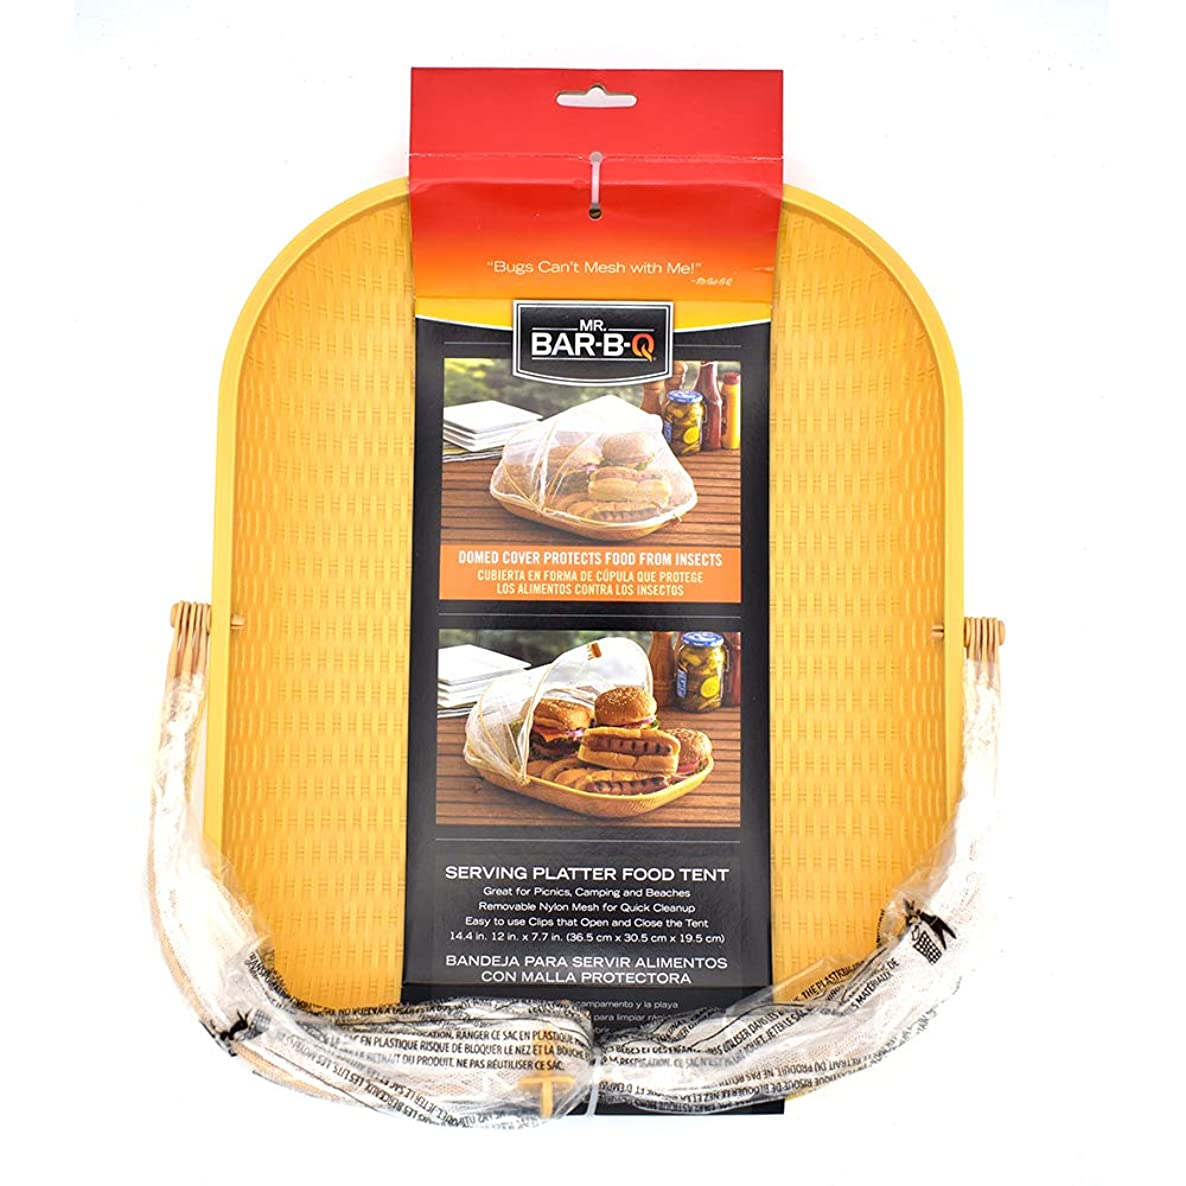 Mr. Bar-B-Q Rectangular Food Serving Tray With Clip on Nylon Mesh Screen Tent Insect-resistant Food Cover - Food Storage Basket for Tailgates, Picnics and BBQ